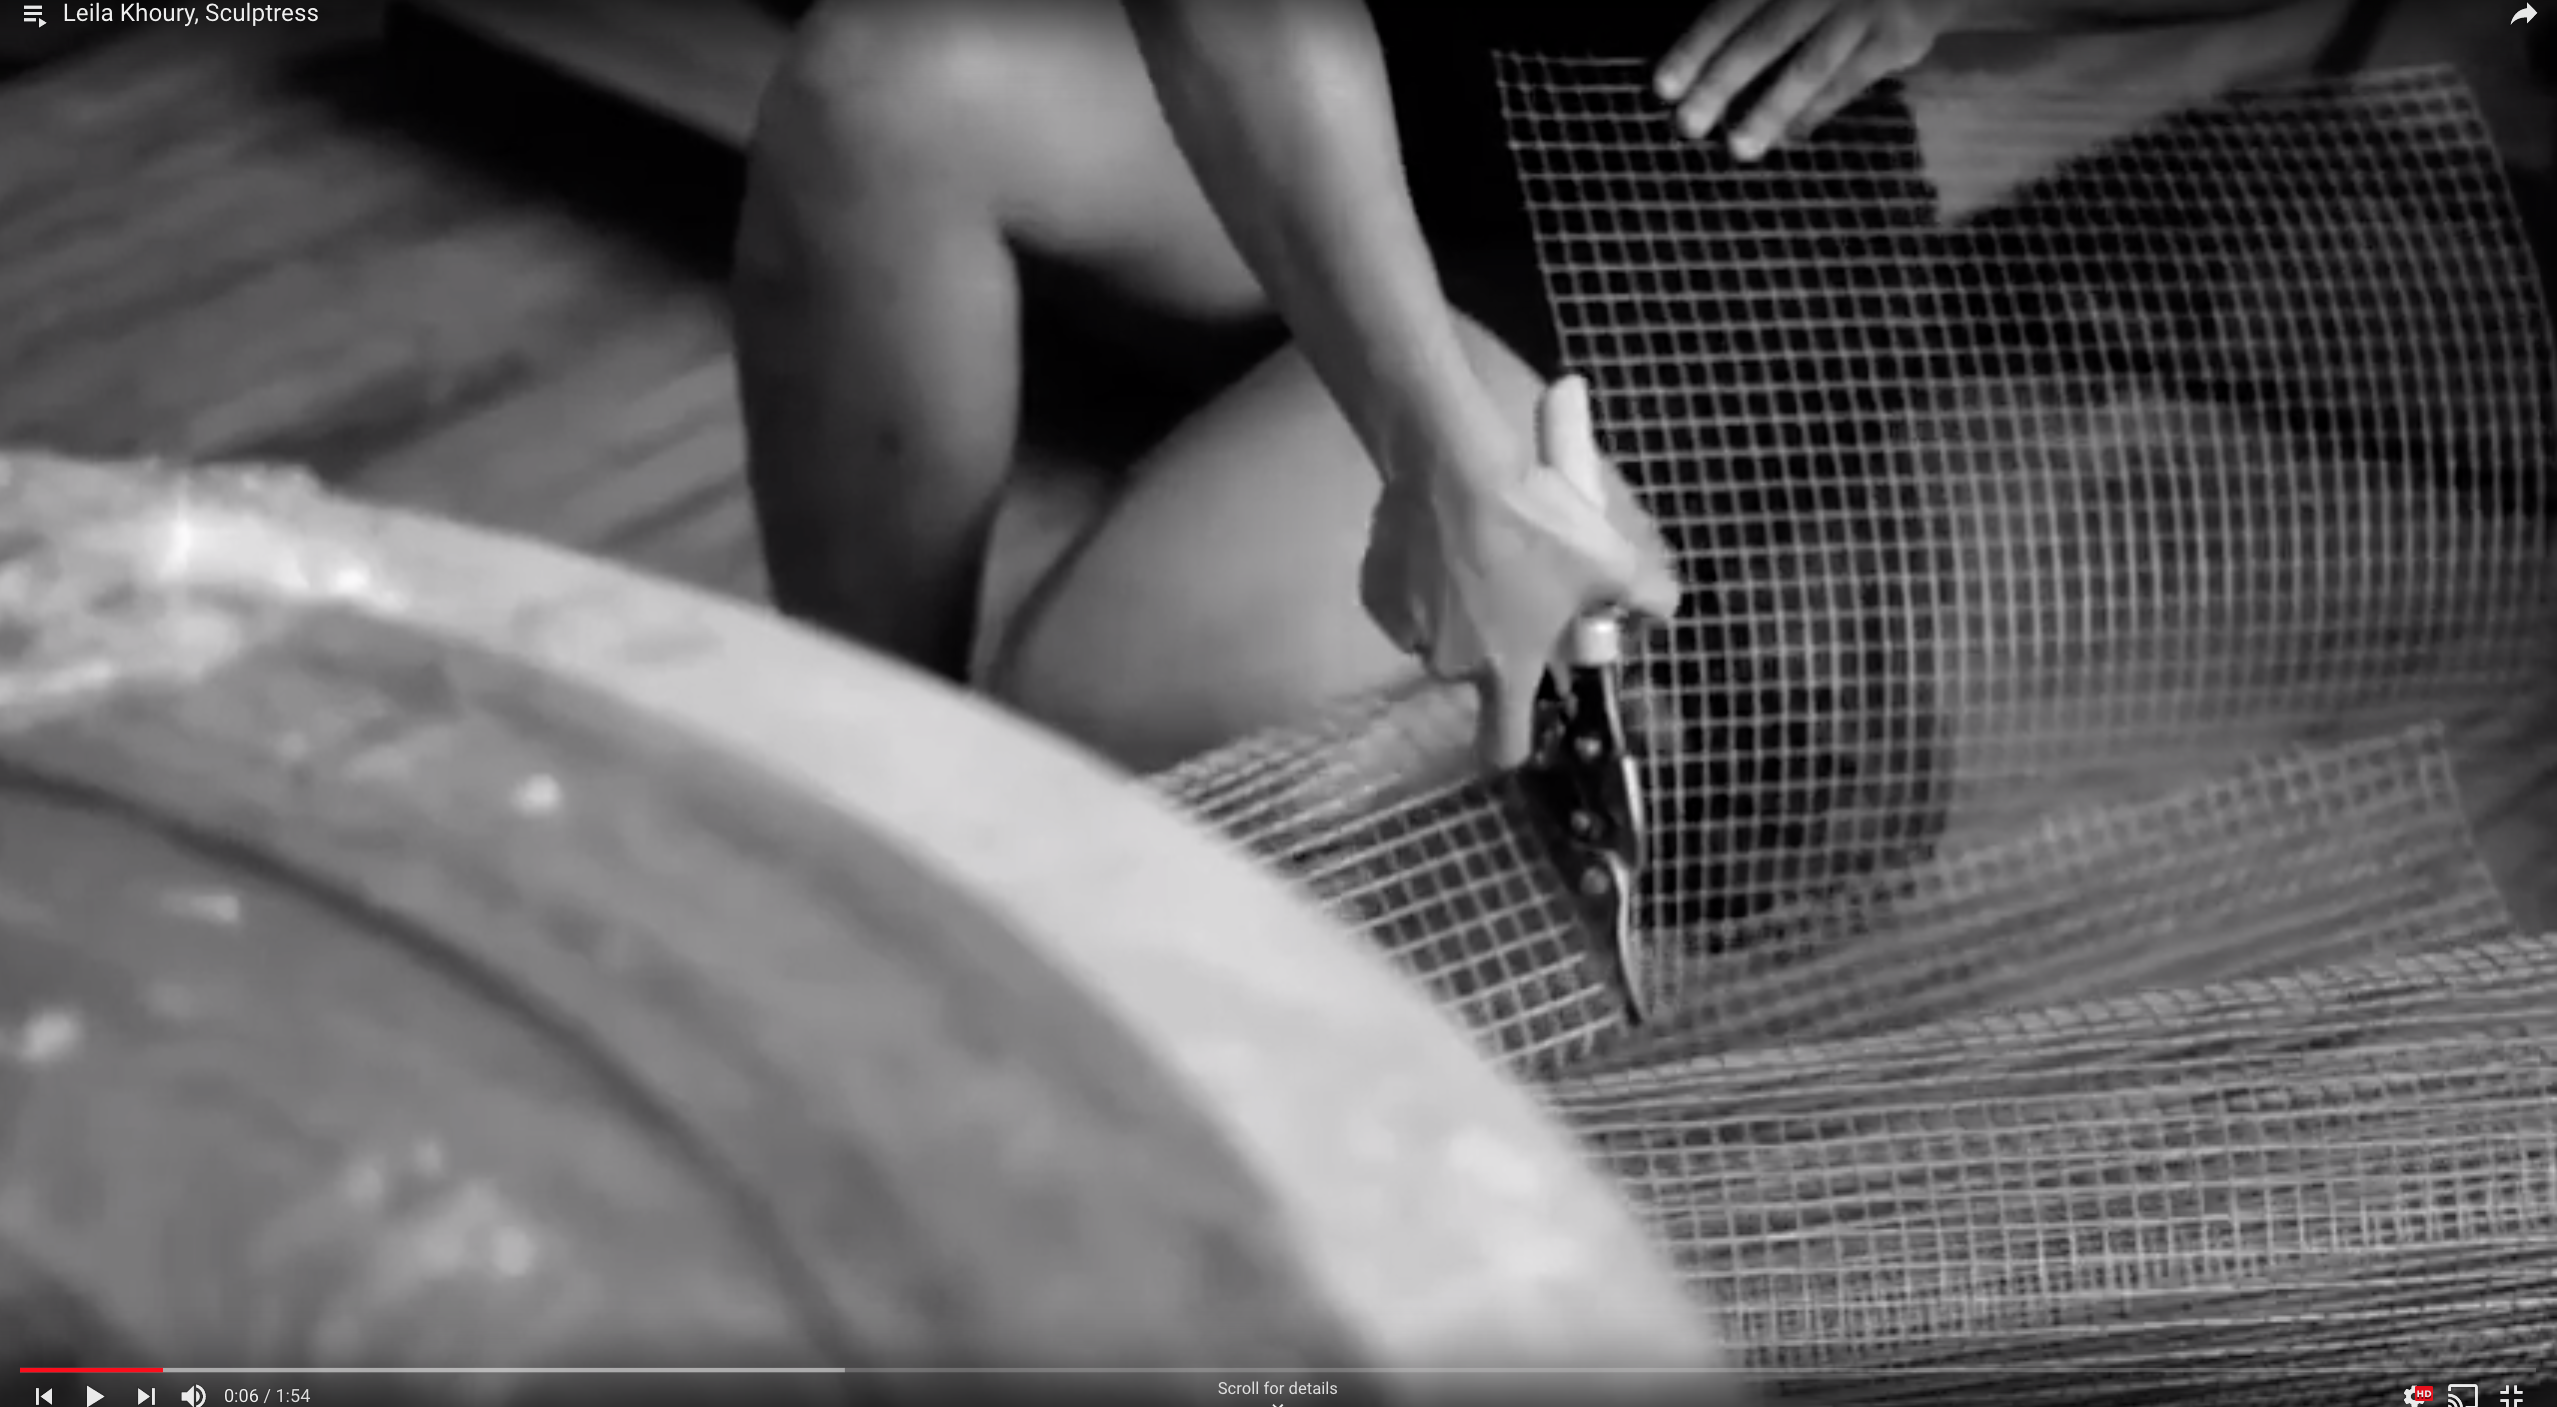 Black and white still image from a video on Leila Khoury shows the artist cutting chicken wire with clippers.